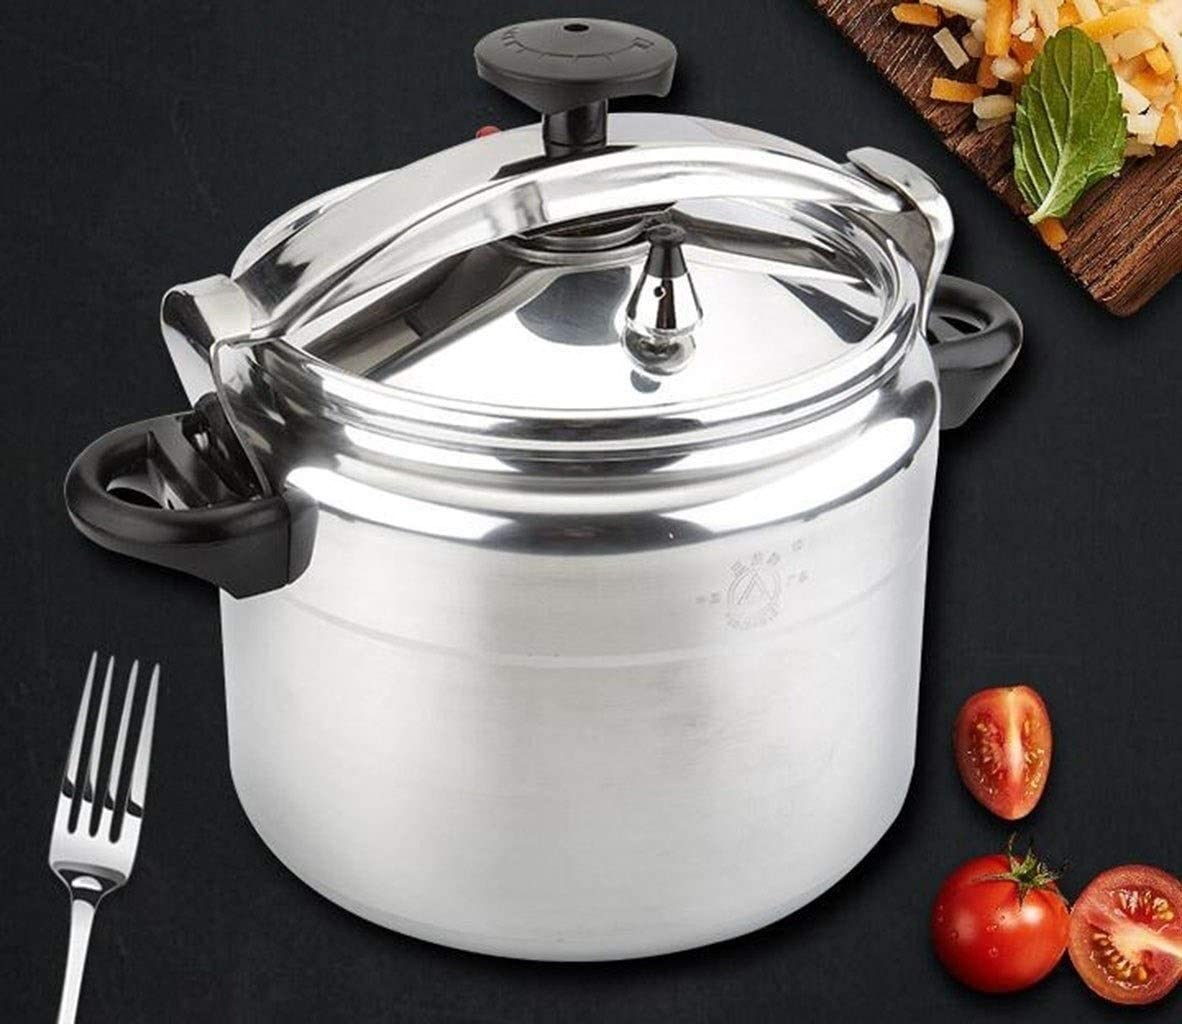 Pressure cooker commercial pressure cooker large capacity explosion-proof pressure cooker household gas is especially suitable for commercial restaurants, restaurants, kitchens, etc. 8L, 50L